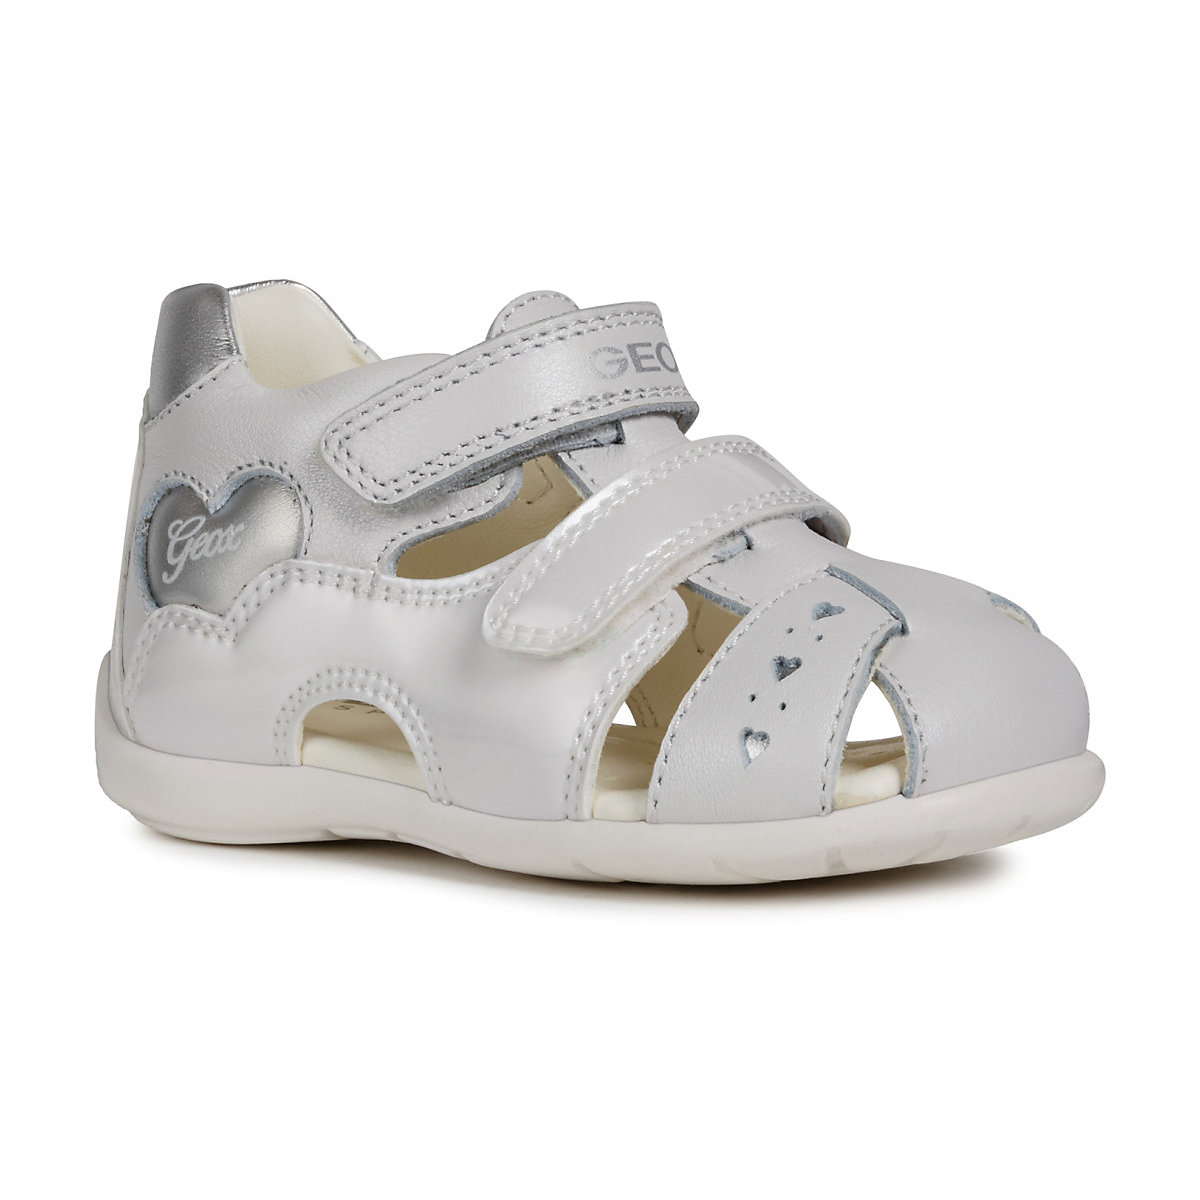 GEOX Sandals 10614446 children's shoes comfortable and light girls and boys gktinoo summer genuine leather women sandals comfortable ladies shoes gladiator sandal women female flat sandals fashion shoe